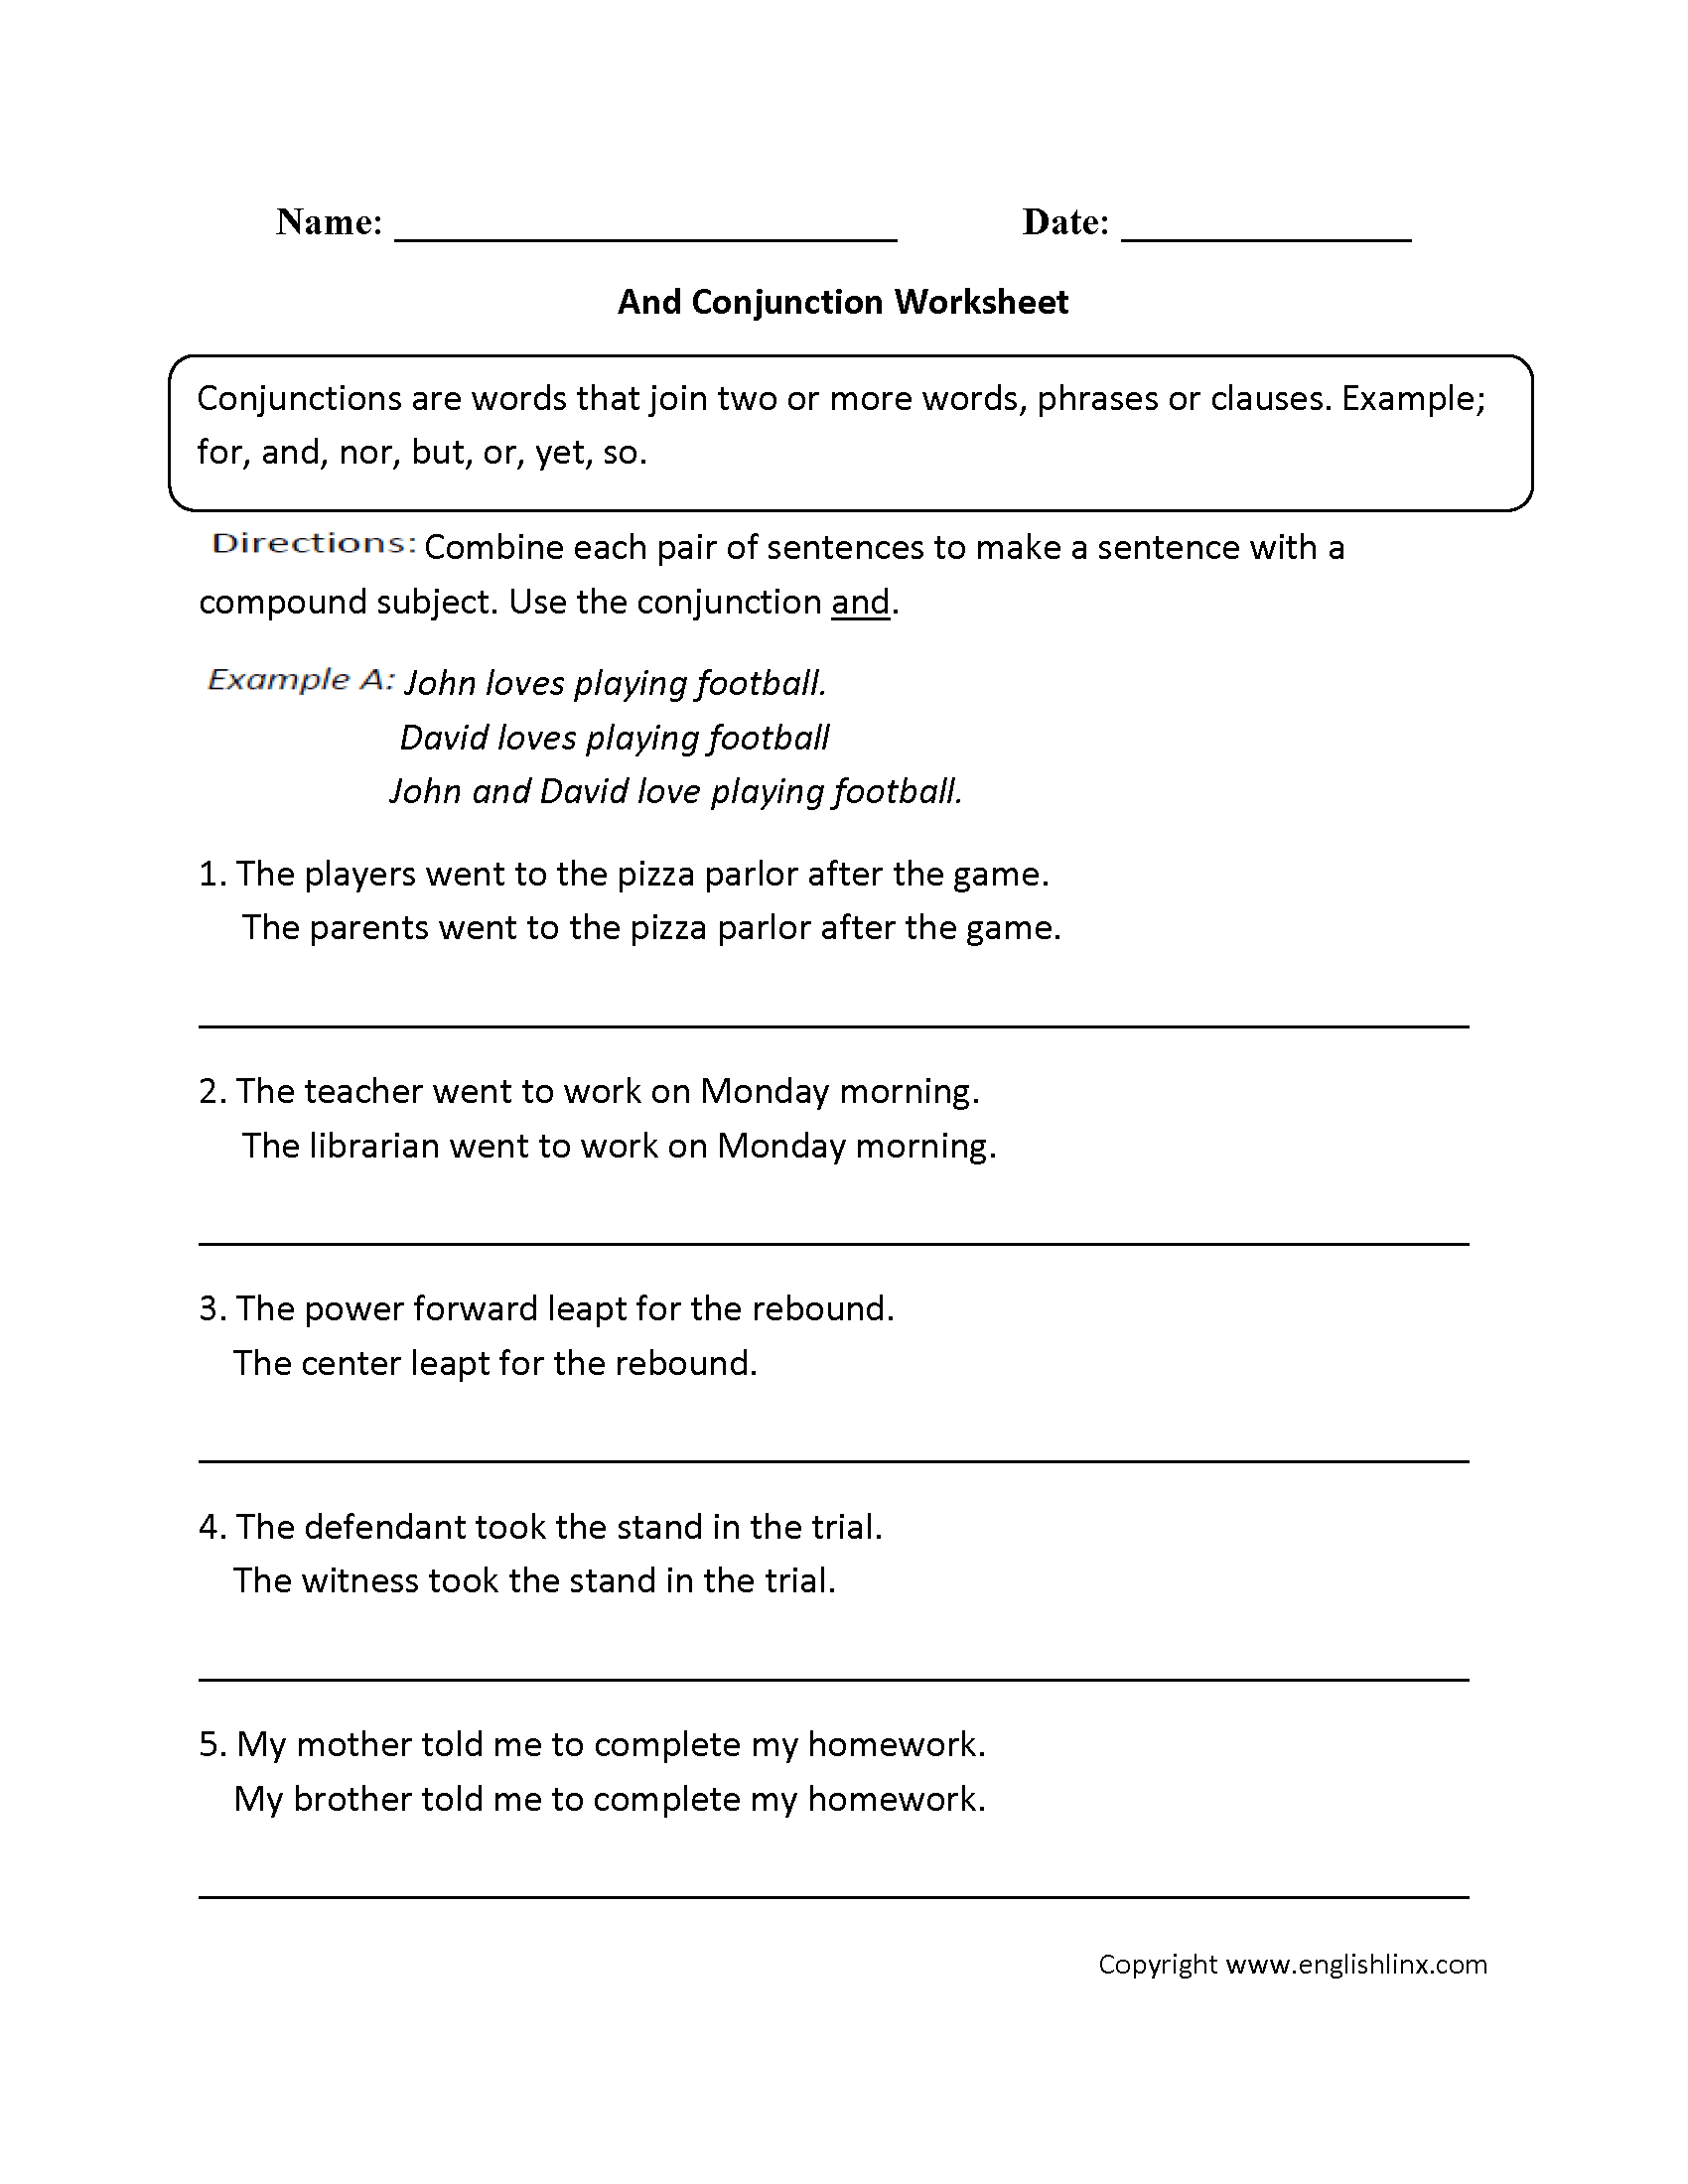 Worksheets Parts Of Speech Worksheet grammar worksheets parts of speech conjunction worksheets